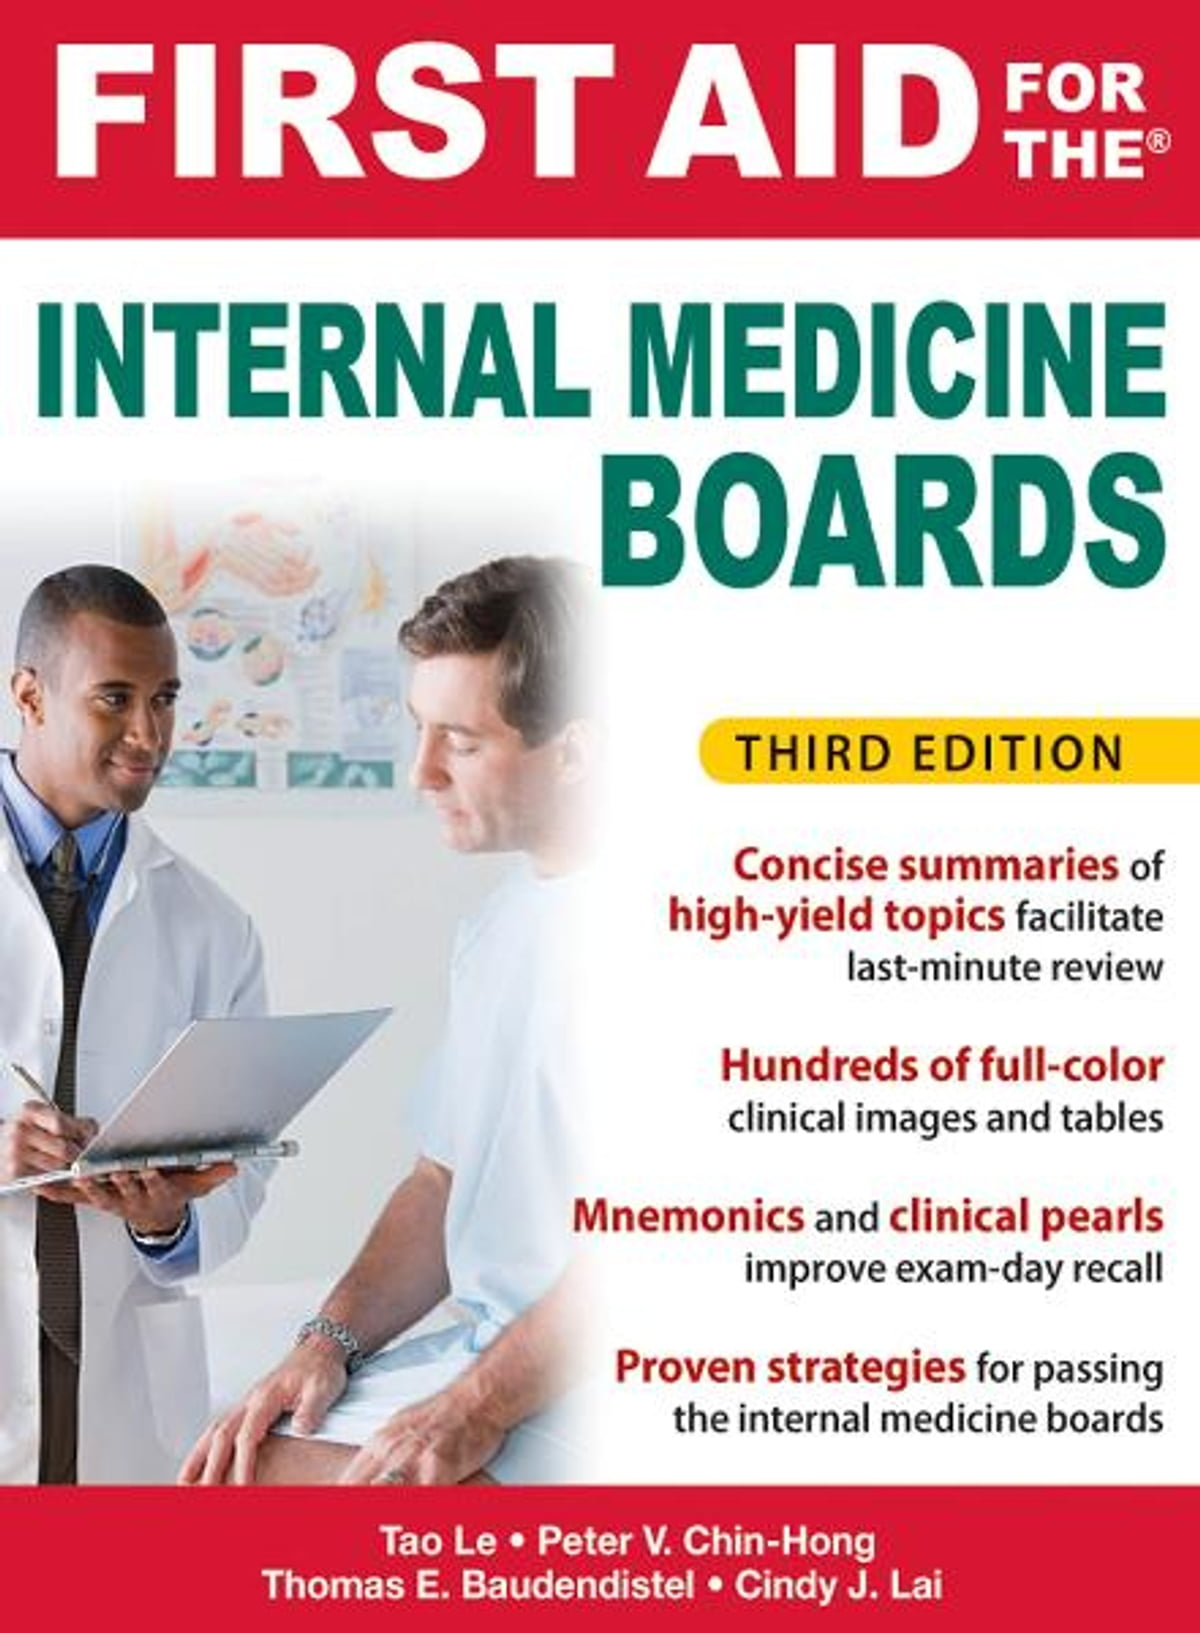 First Aid For The Internal Medicine Boards, 3rd Edition Ebook By Tao Le, Tom